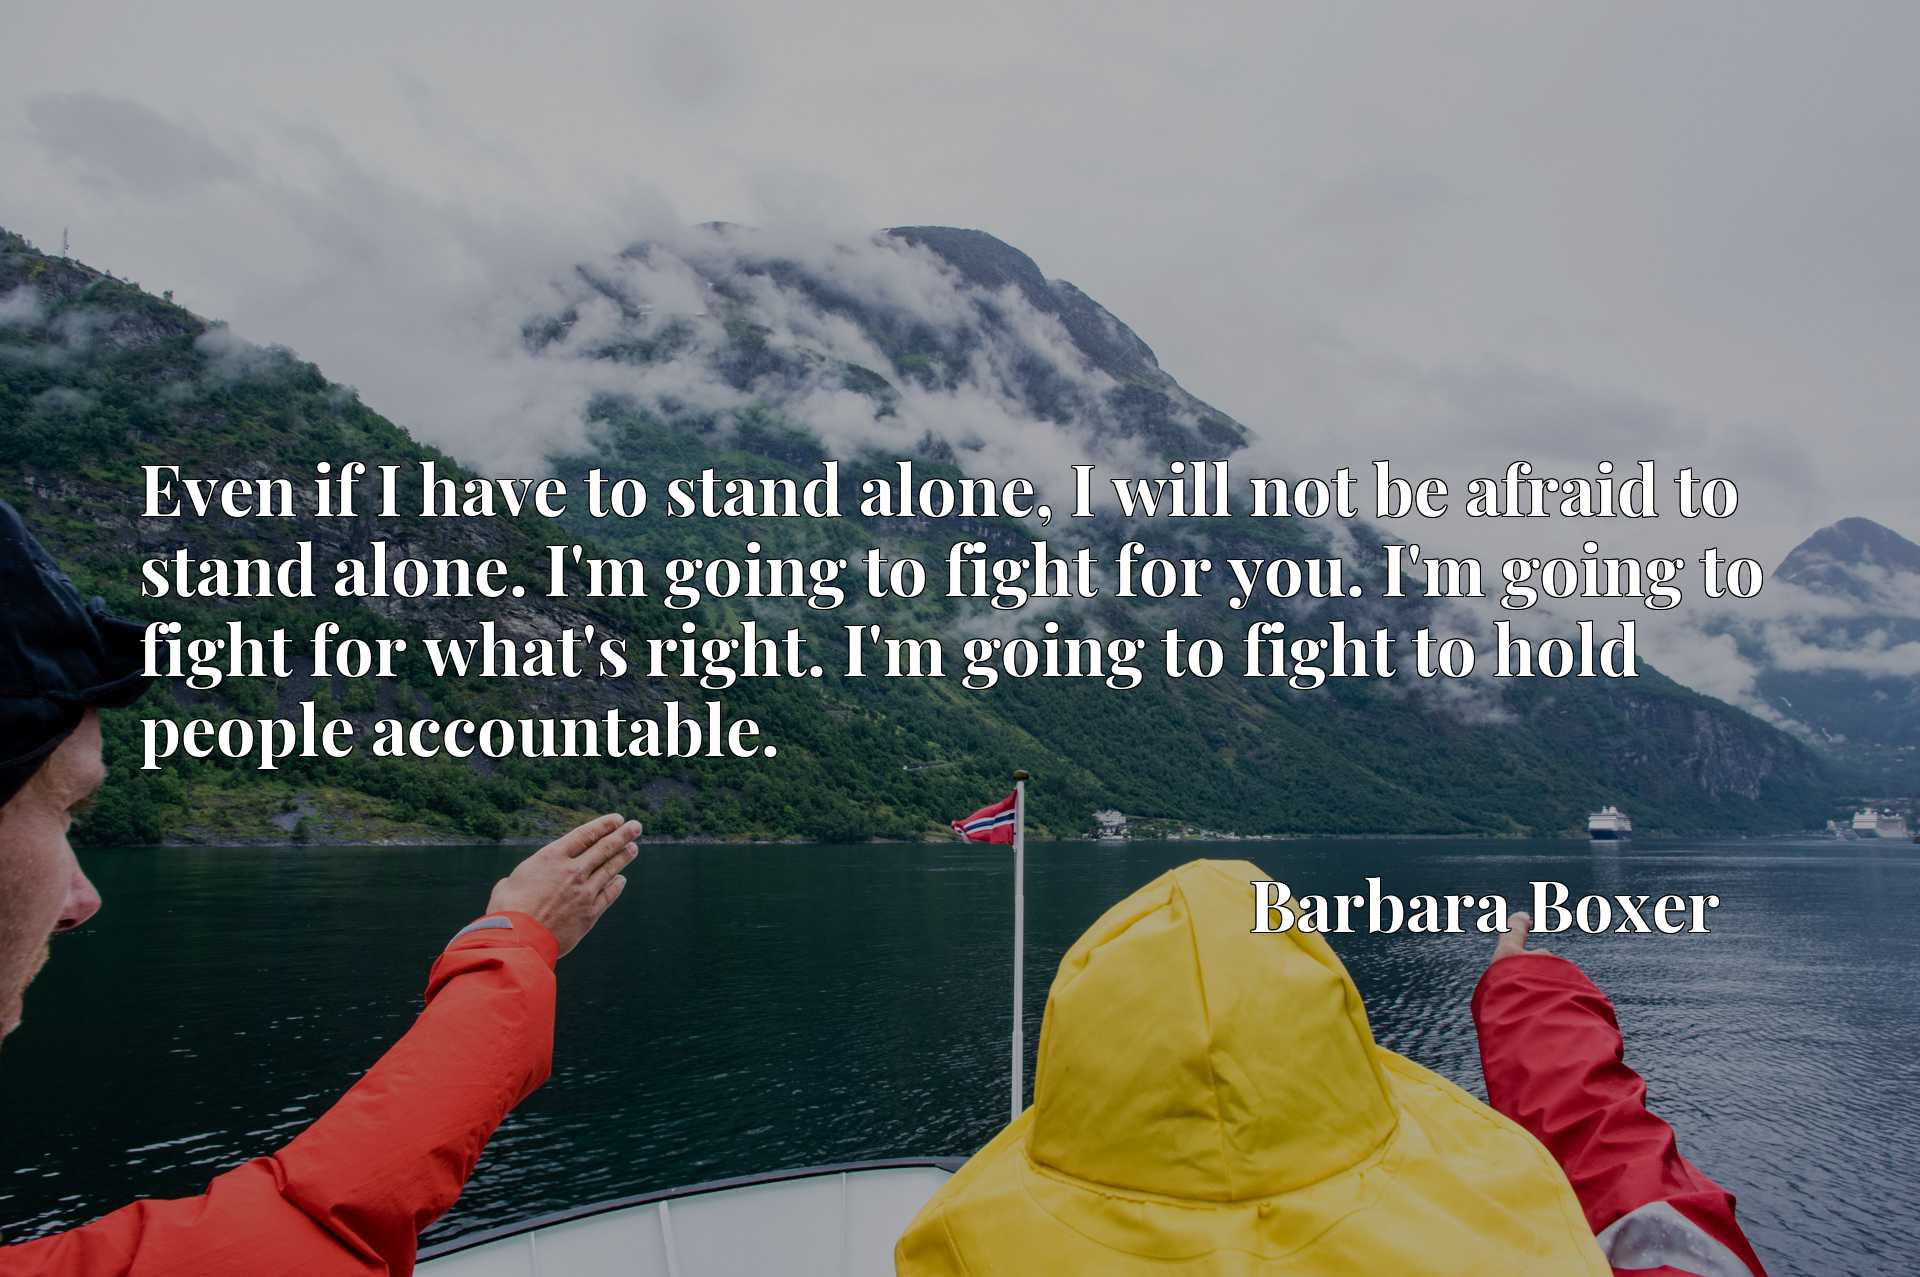 Even if I have to stand alone, I will not be afraid to stand alone. I'm going to fight for you. I'm going to fight for what's right. I'm going to fight to hold people accountable.